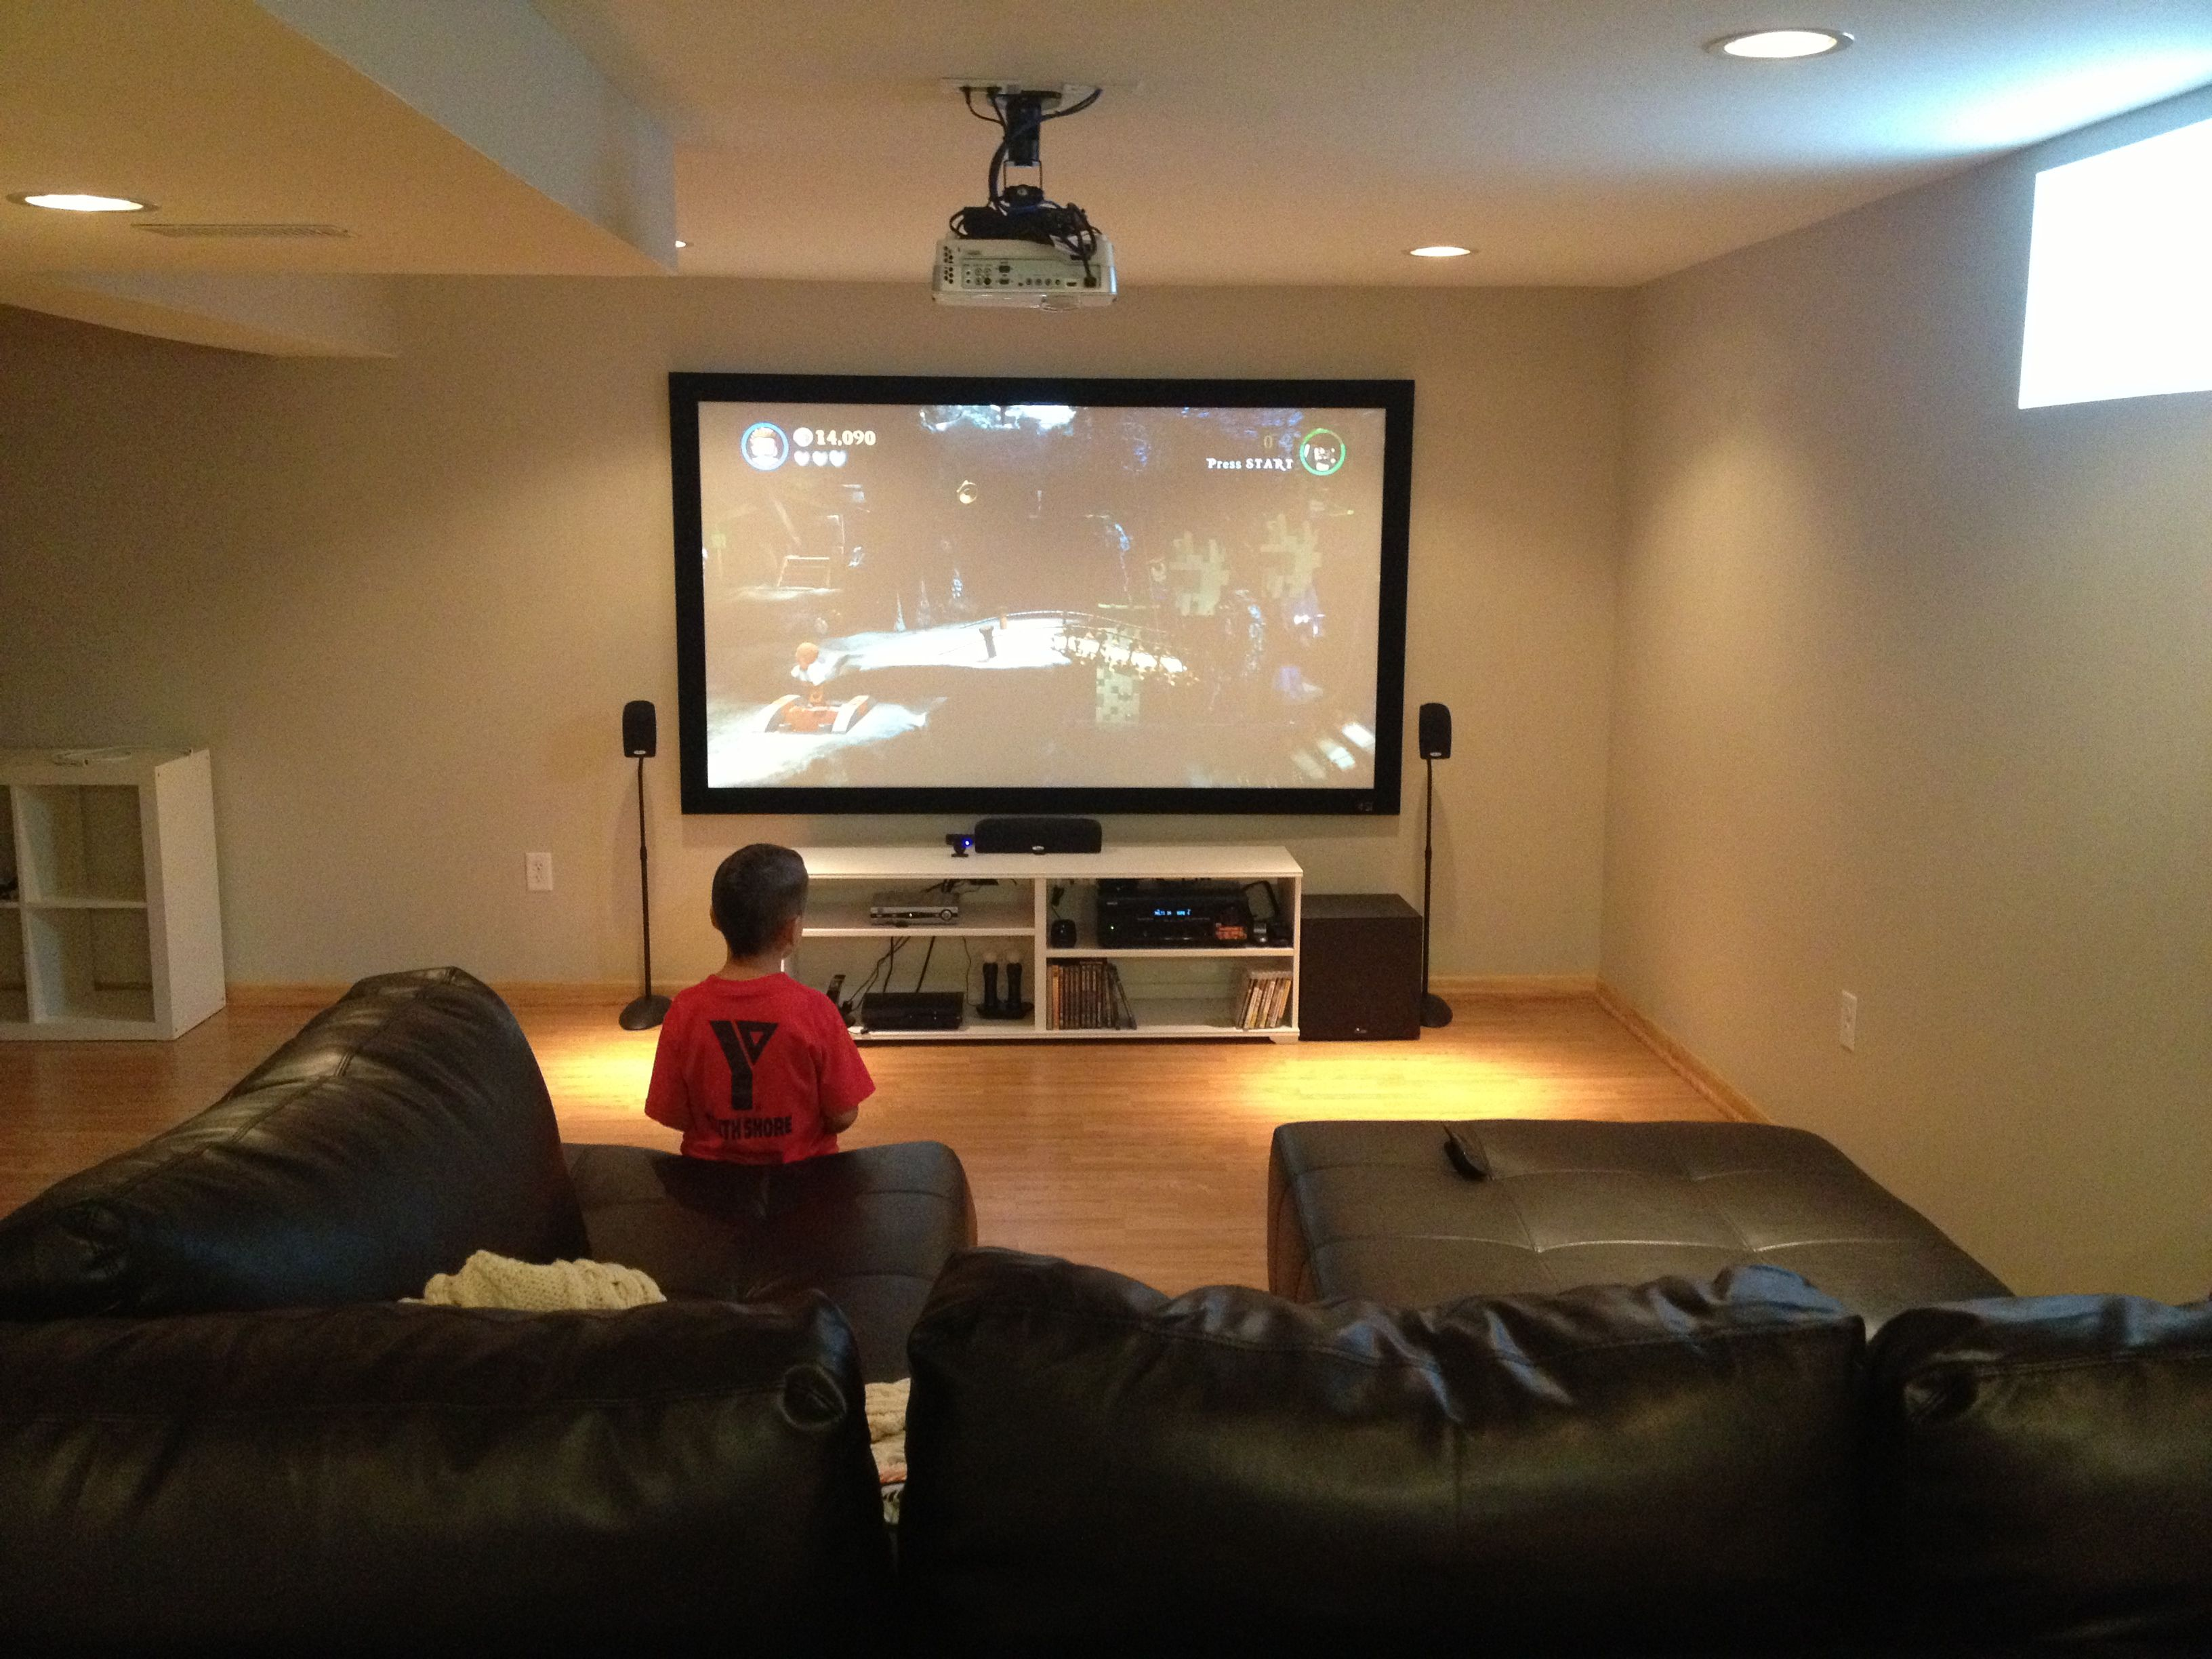 Basement Theater 92 Screen Denon Receiver Polk Speakers Benq Projector Living Room Theaters Home Cinema Room Tv Room #projector #for #living #room #instead #of #tv